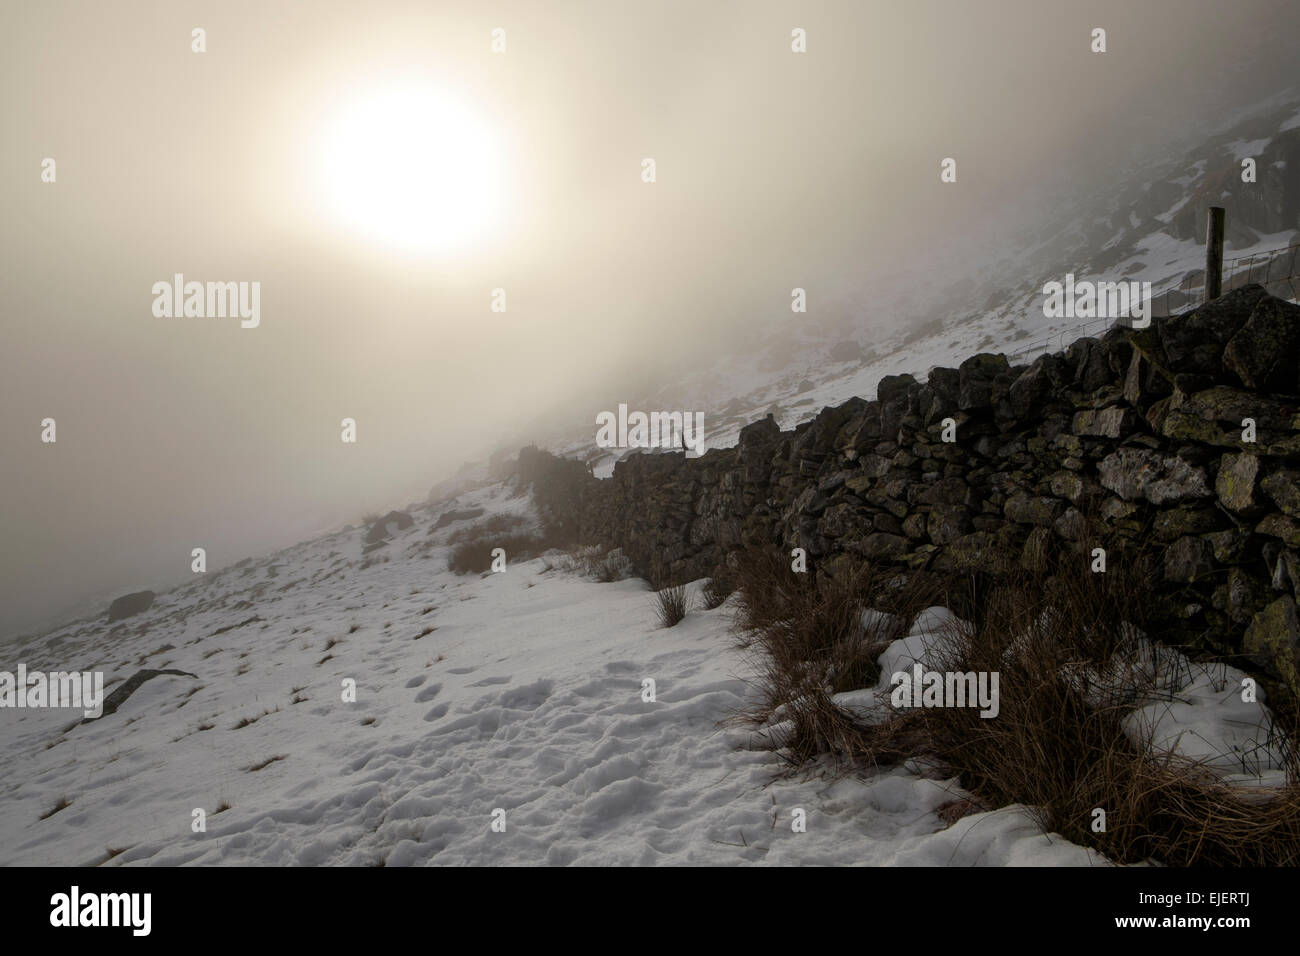 Sun shining sunshine burning through low cloud with snow on ground in winter. Ogwen Valley, Snowdonia National Park, - Stock Image